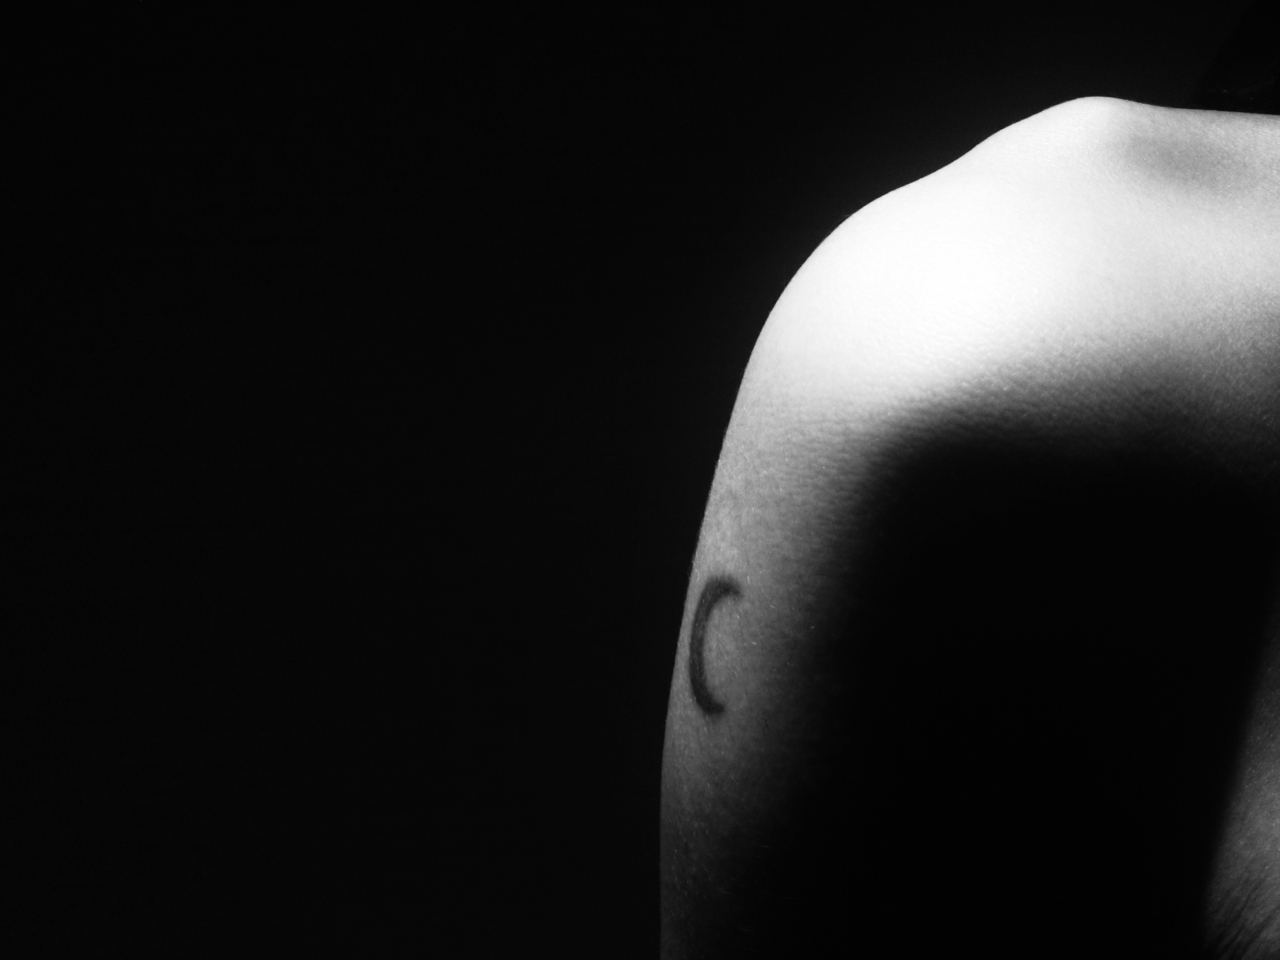 Luna © Aik Beng Chia 2012. All Rights Reserved.